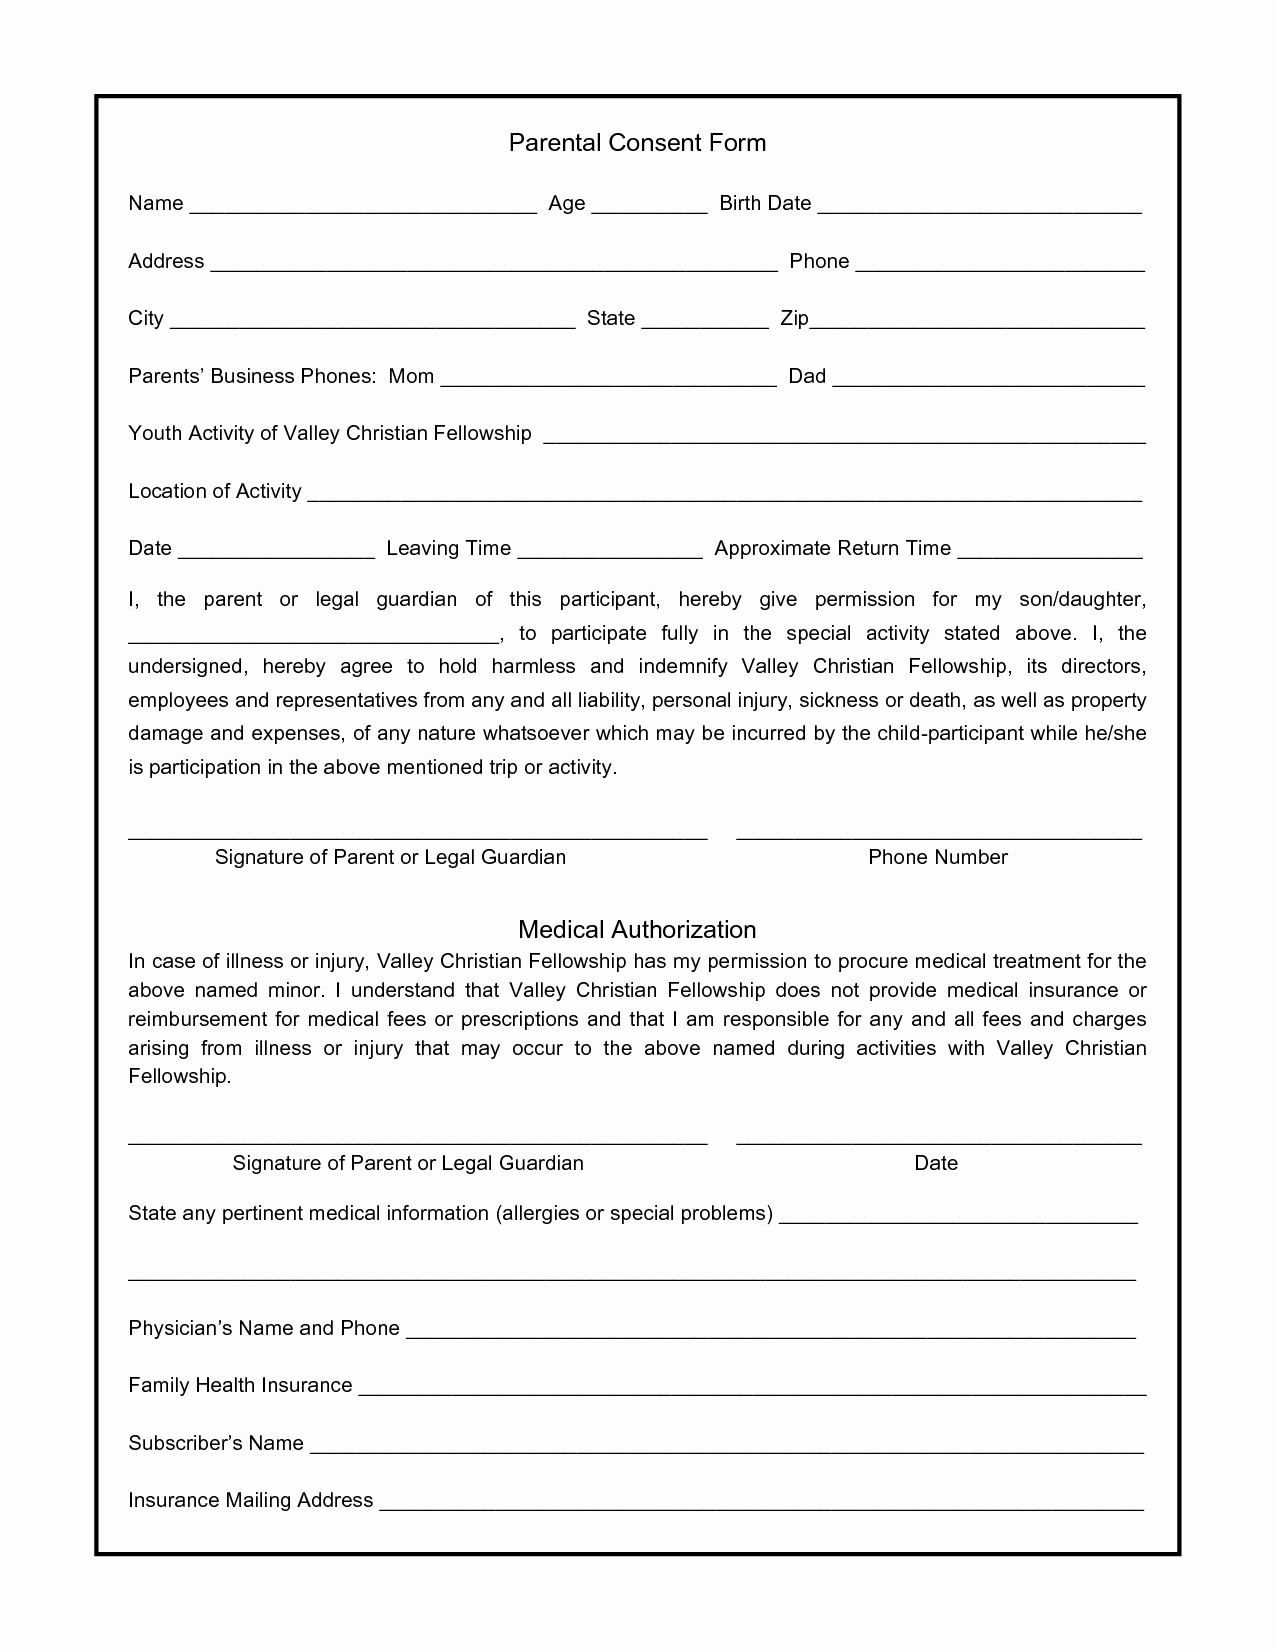 Child Travel Consent form Template Inspirational Parental Consent form for S Swifter Parental